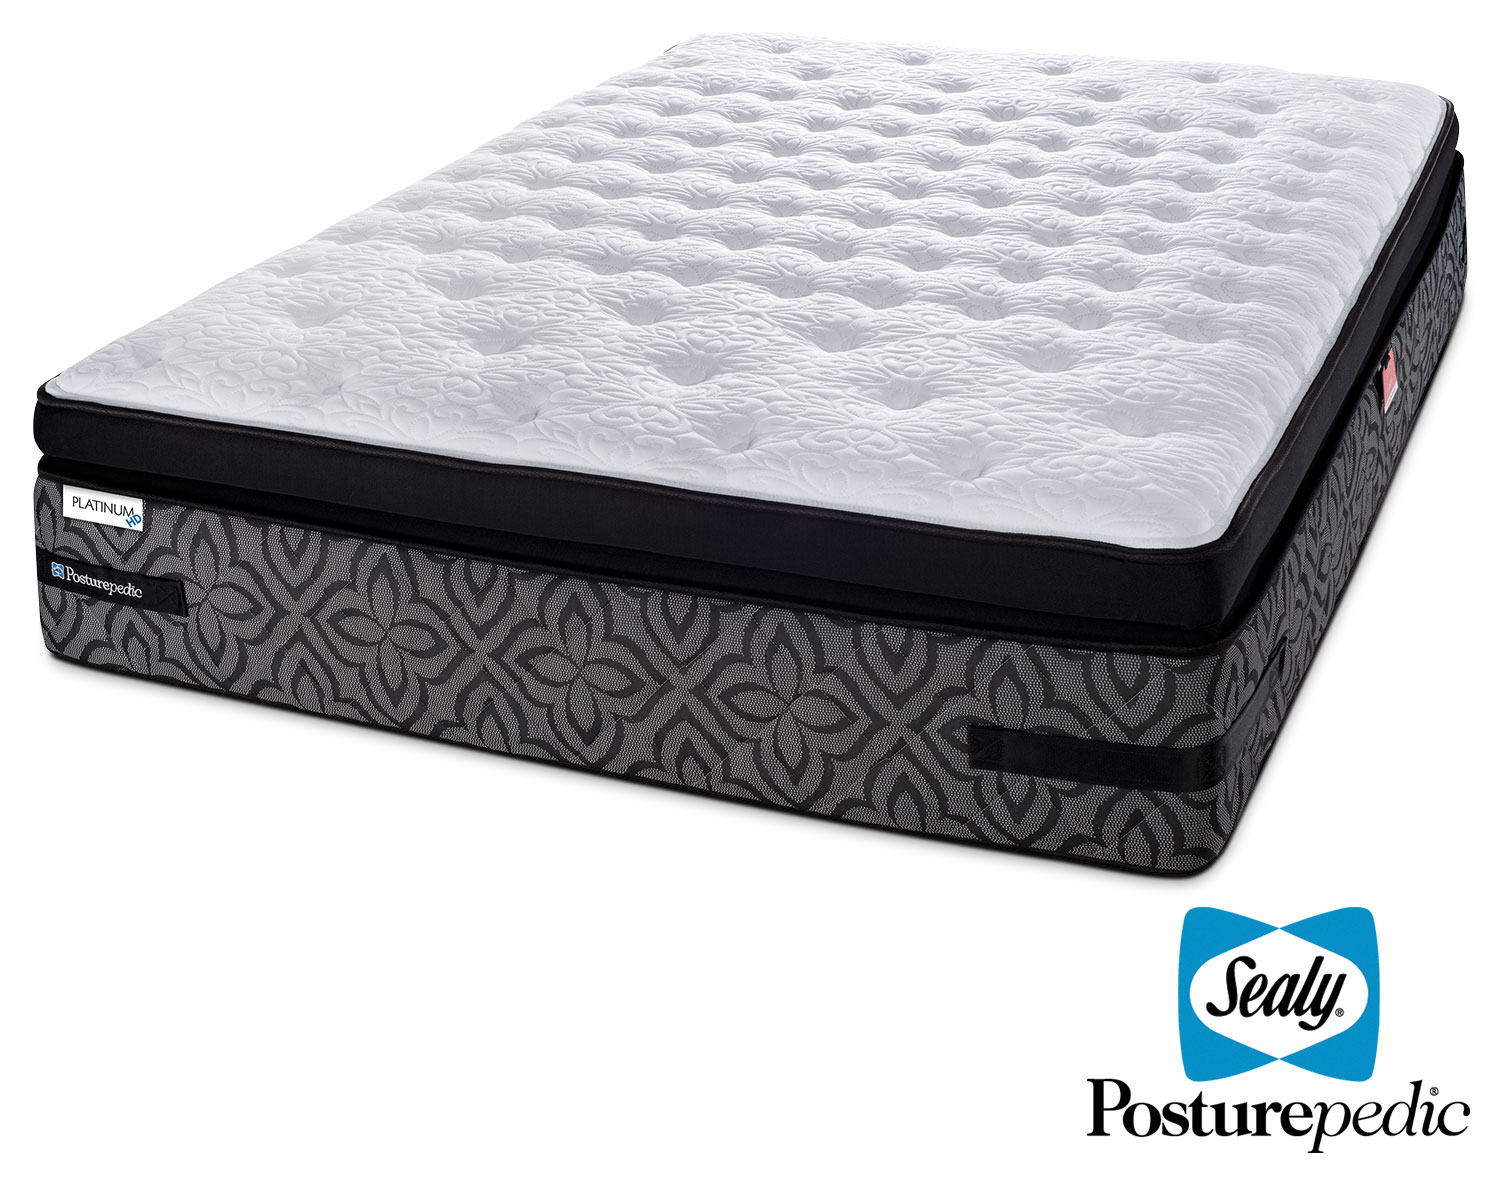 Mattresses and Bedding - Sealy Posturepedic 3 K Cushion Firm King Mattress